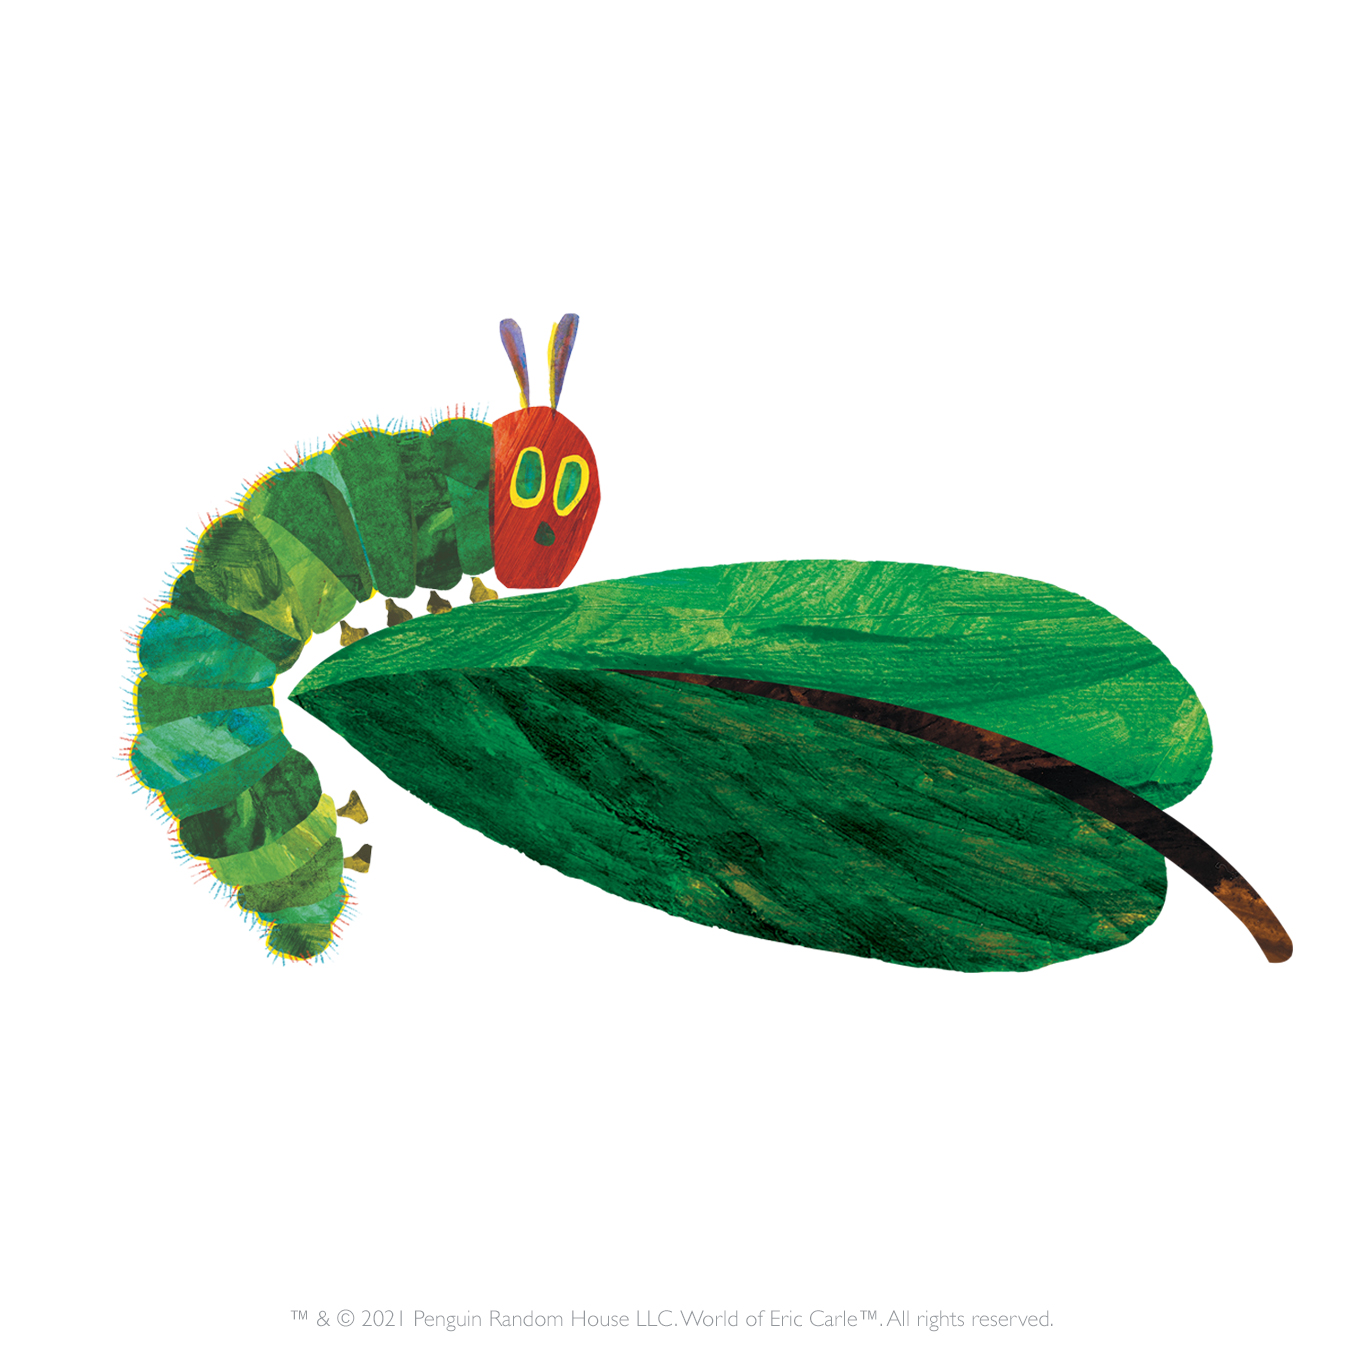 eric carle on Twitter